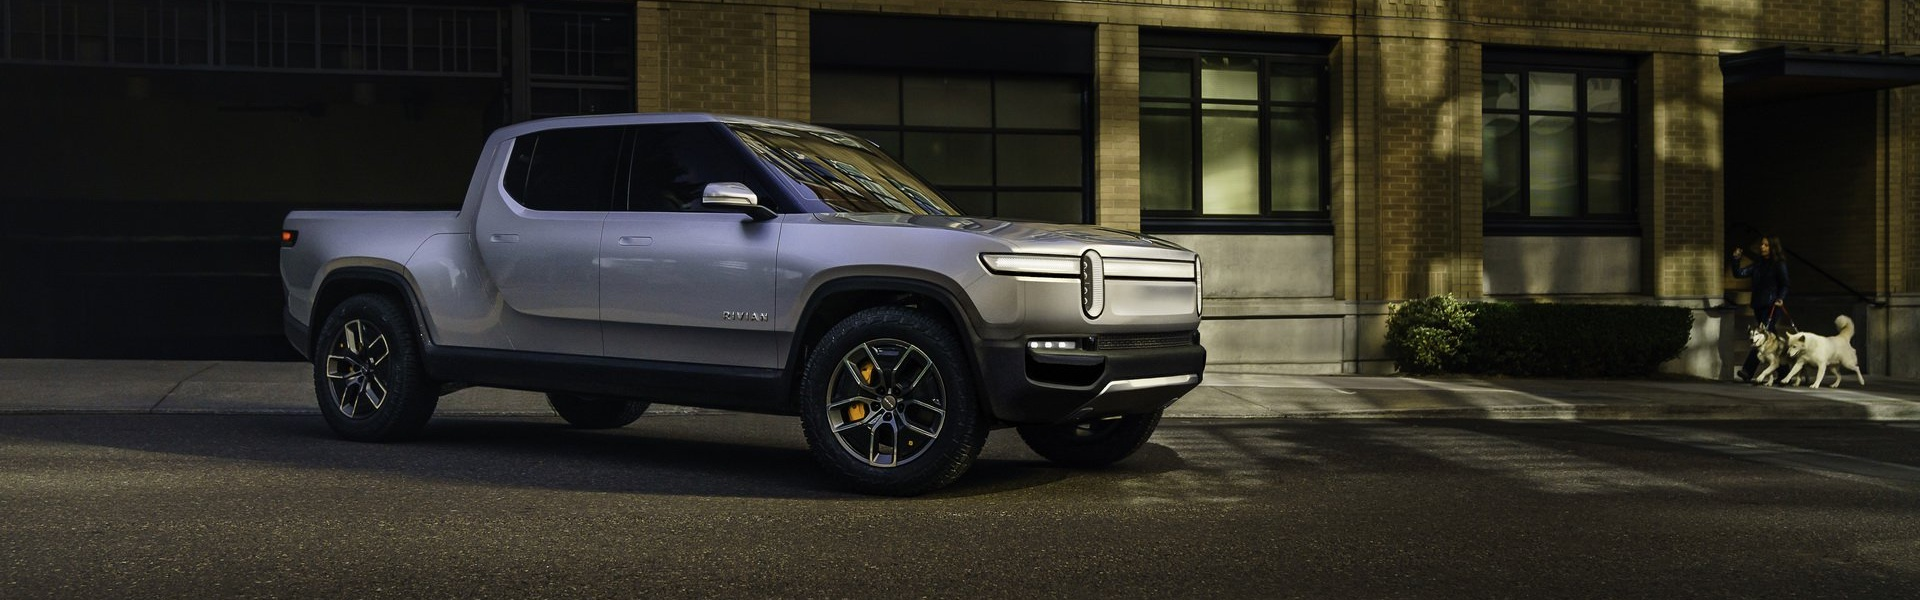 rivian-unveils-r1t-electric-truck-5.jpg